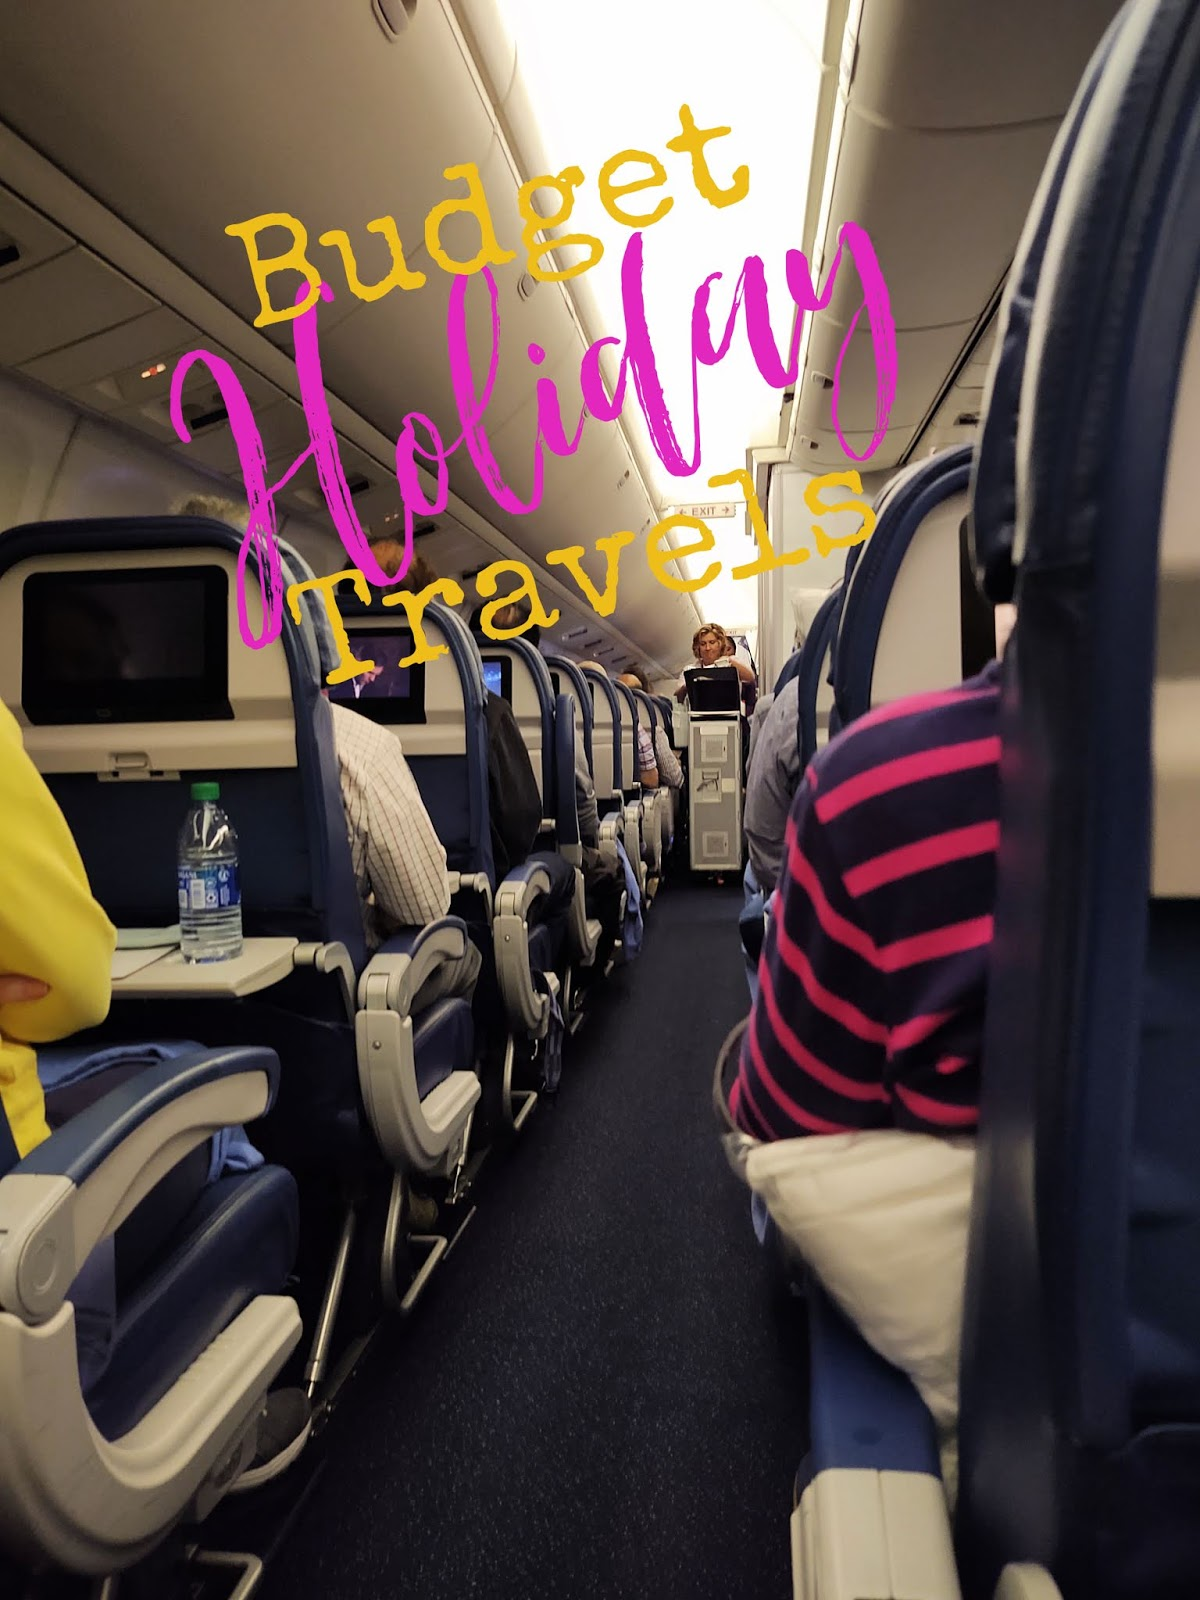 budget holiday travel tips